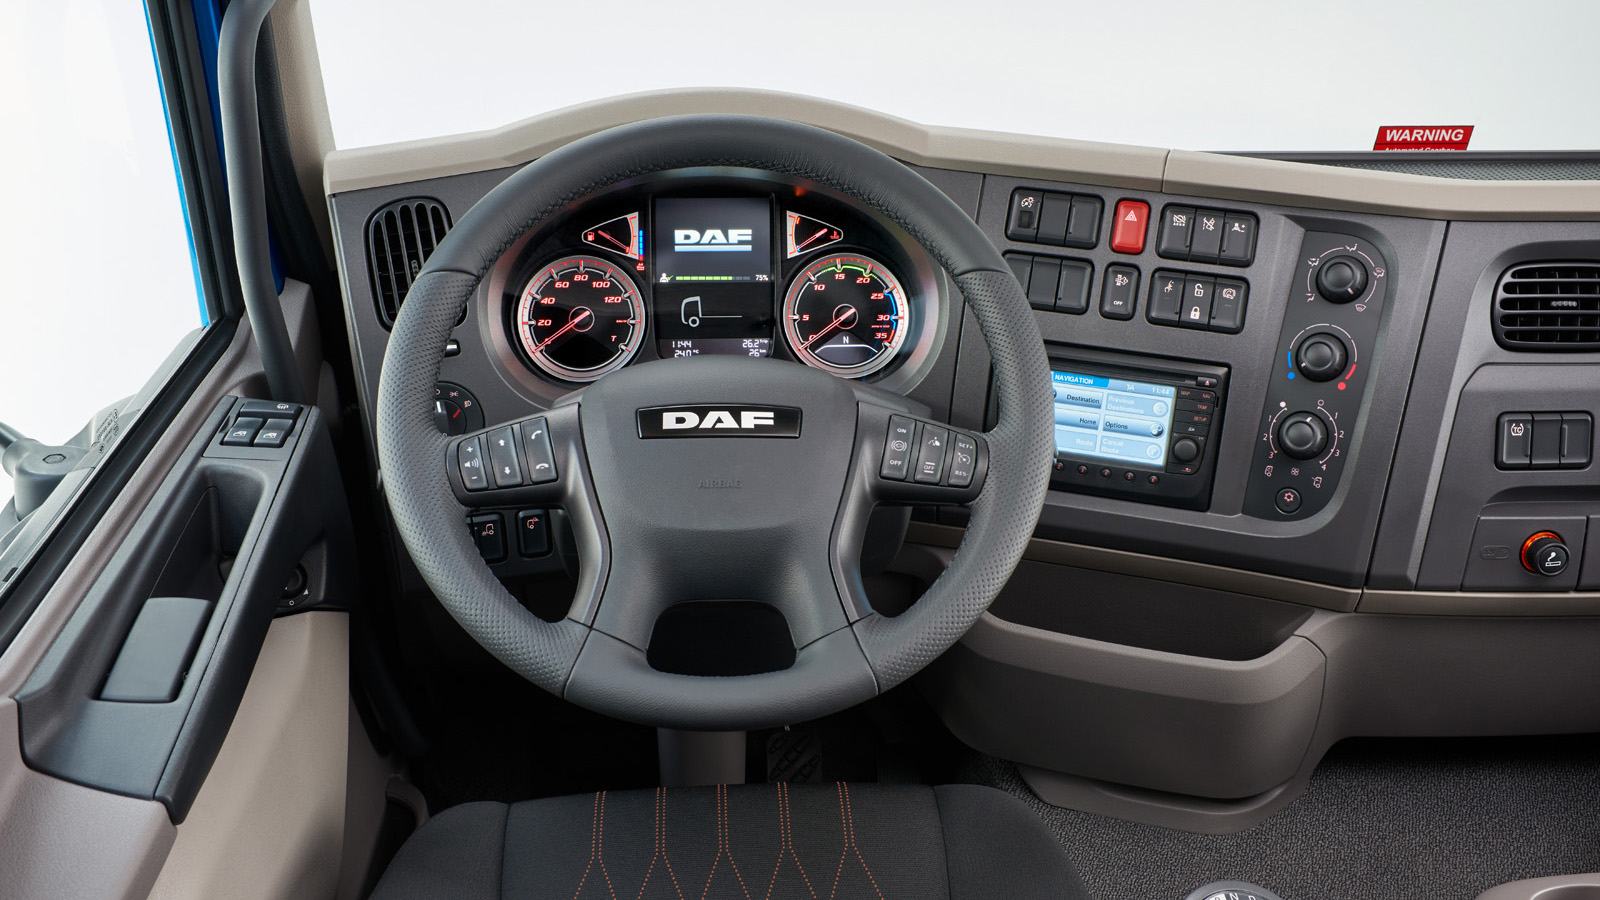 new-daf-LF-steering-wheel